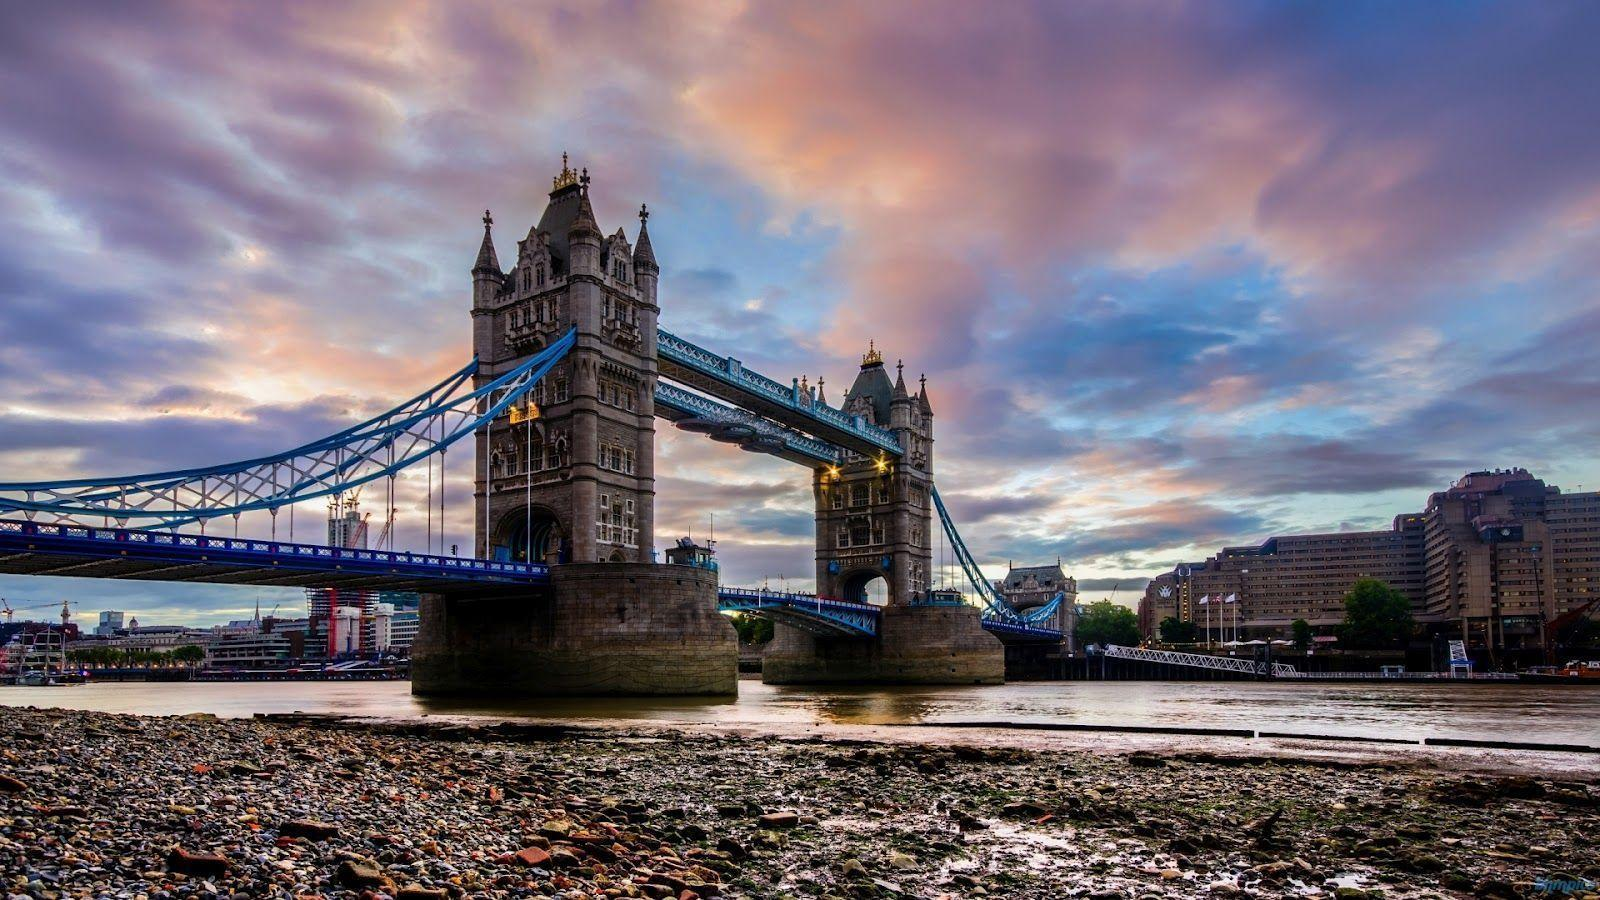 Tower Bridge Wallpapers